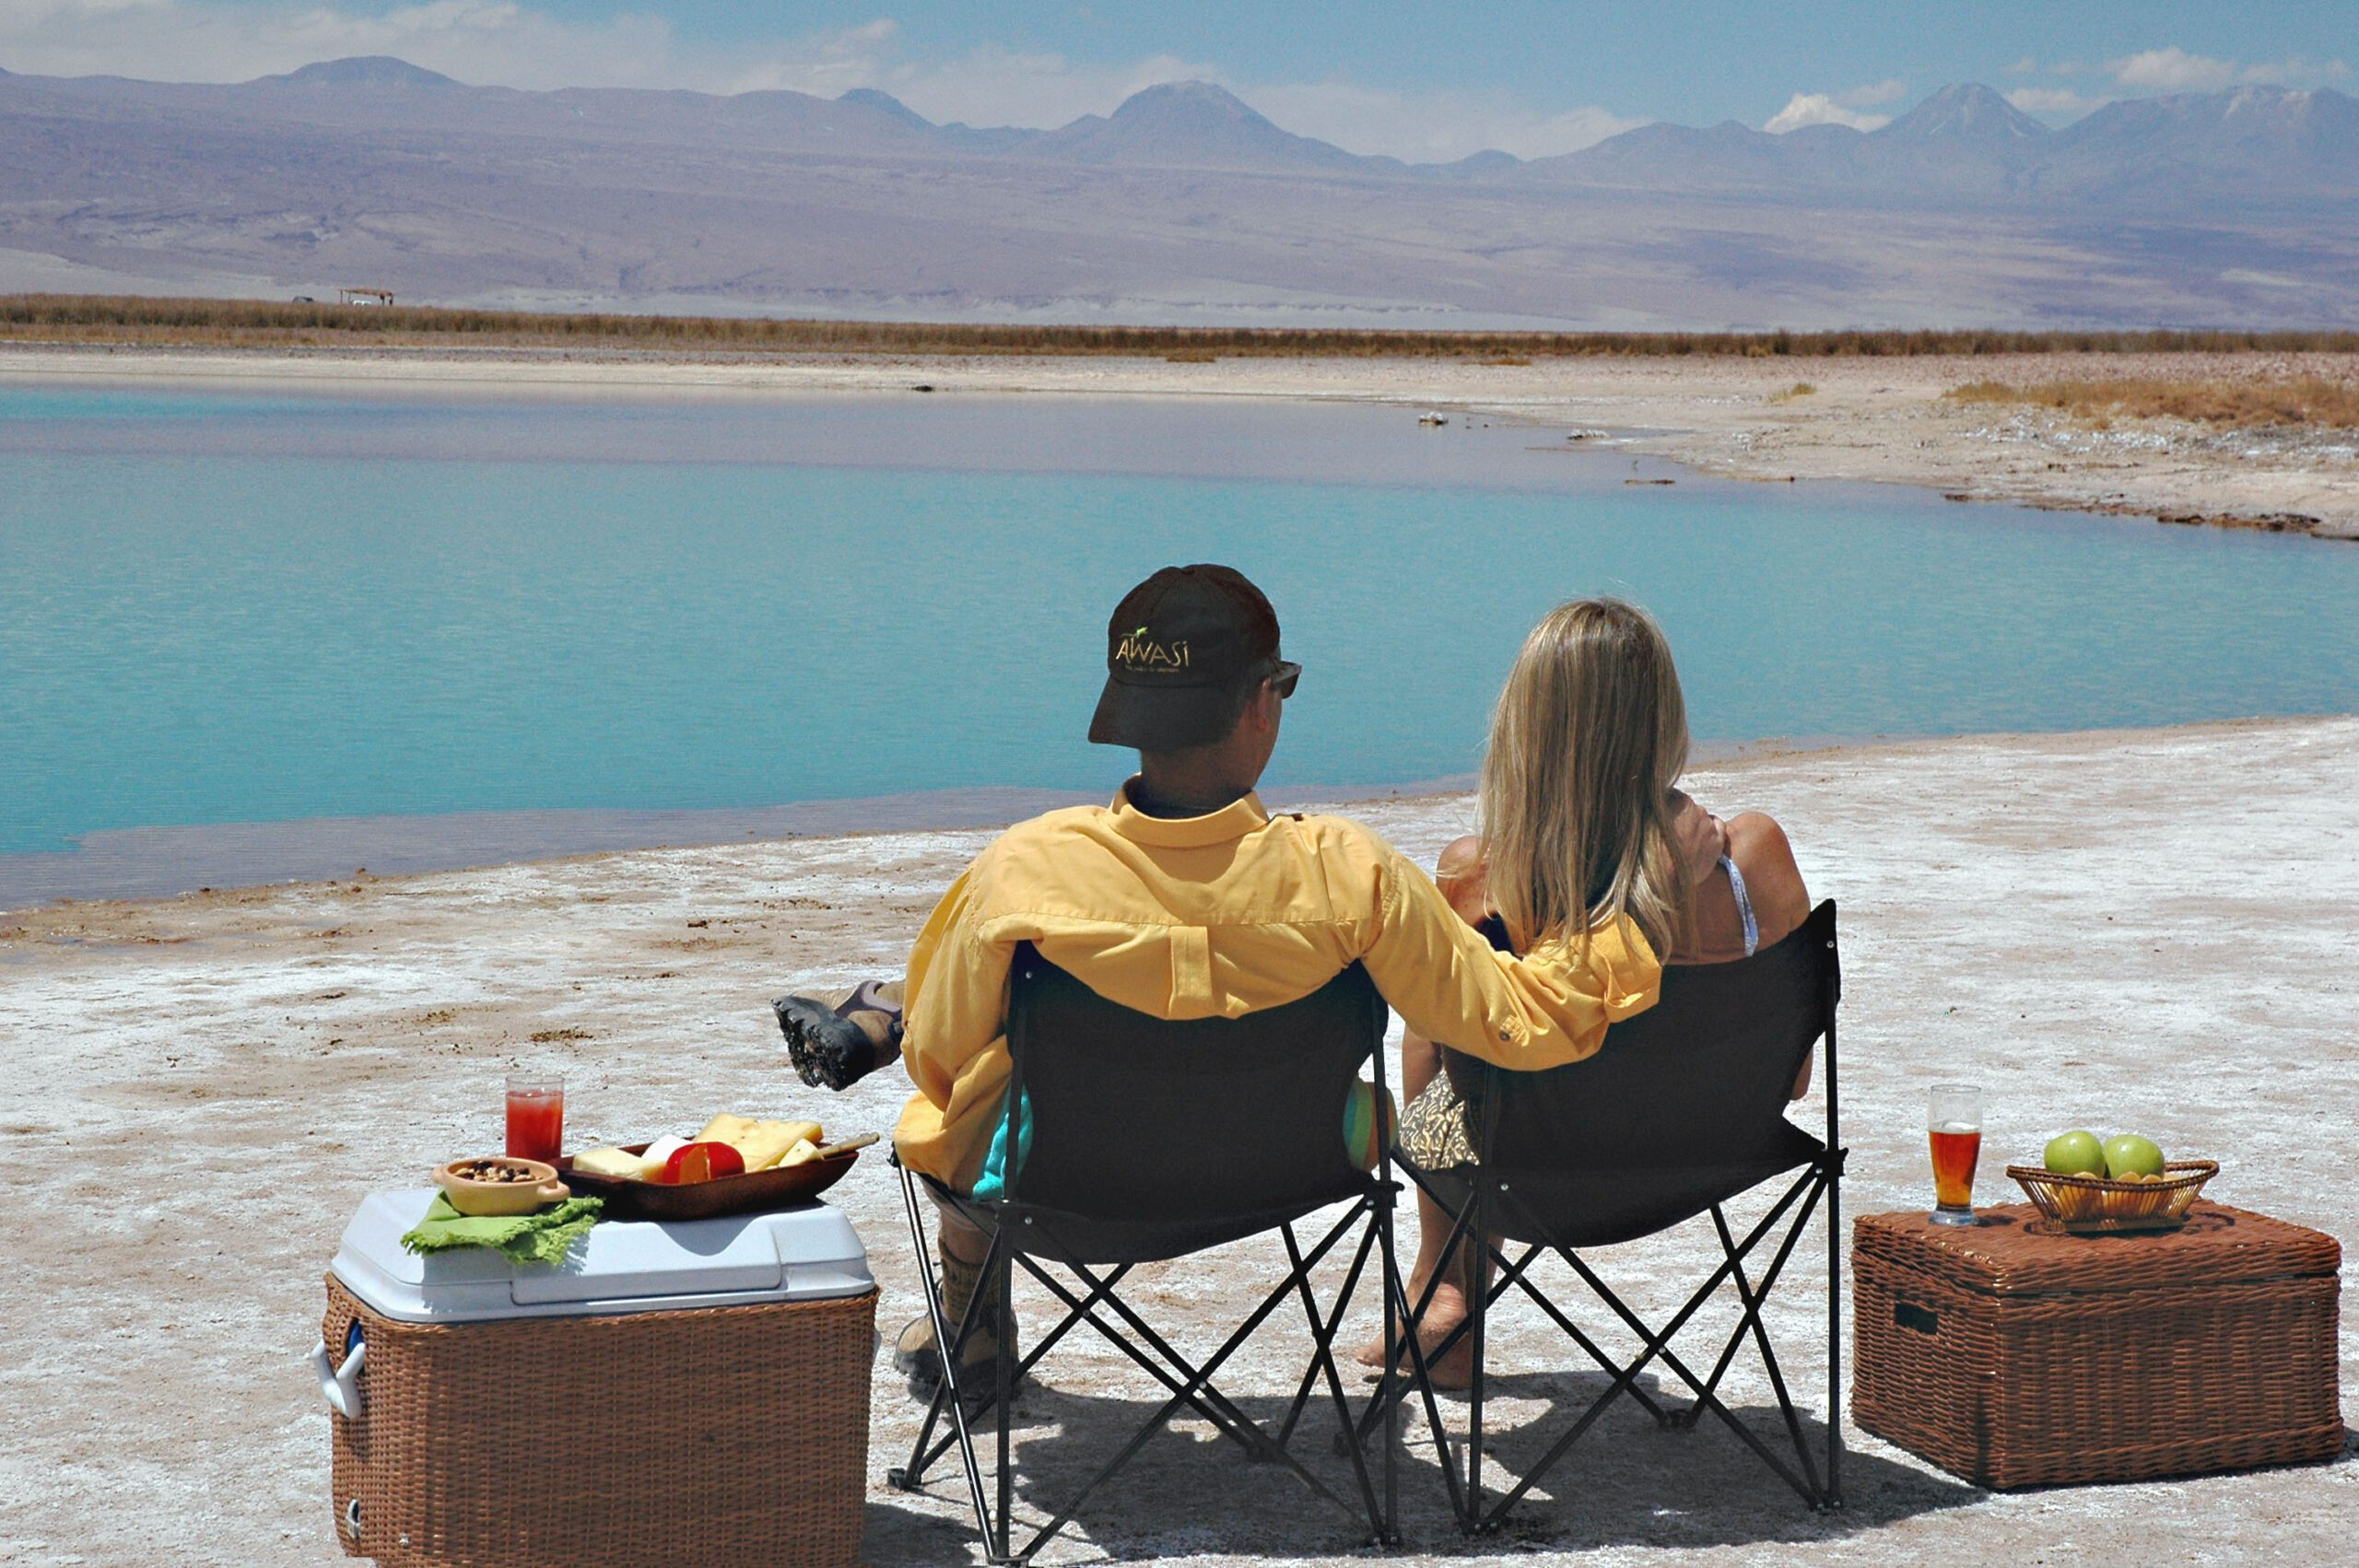 two people stopping for snacks overlooking a lake in the Atacama desert on Argentina & Chile tour